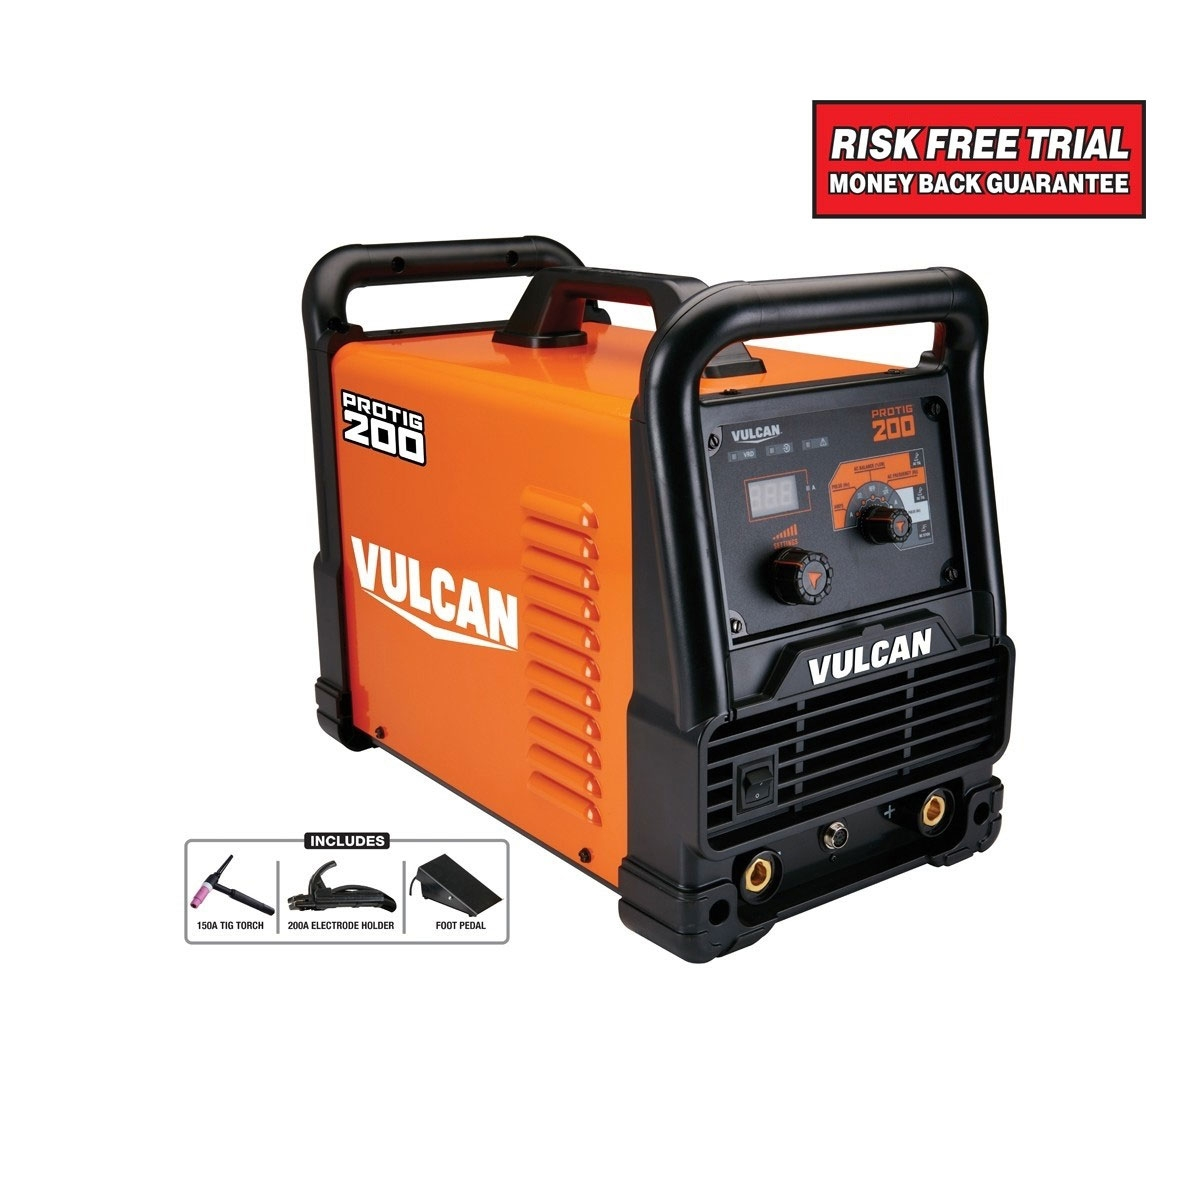 Protig 200 Industrial Welder With 120 240 Volt Input Tig Welding Machine Diagram